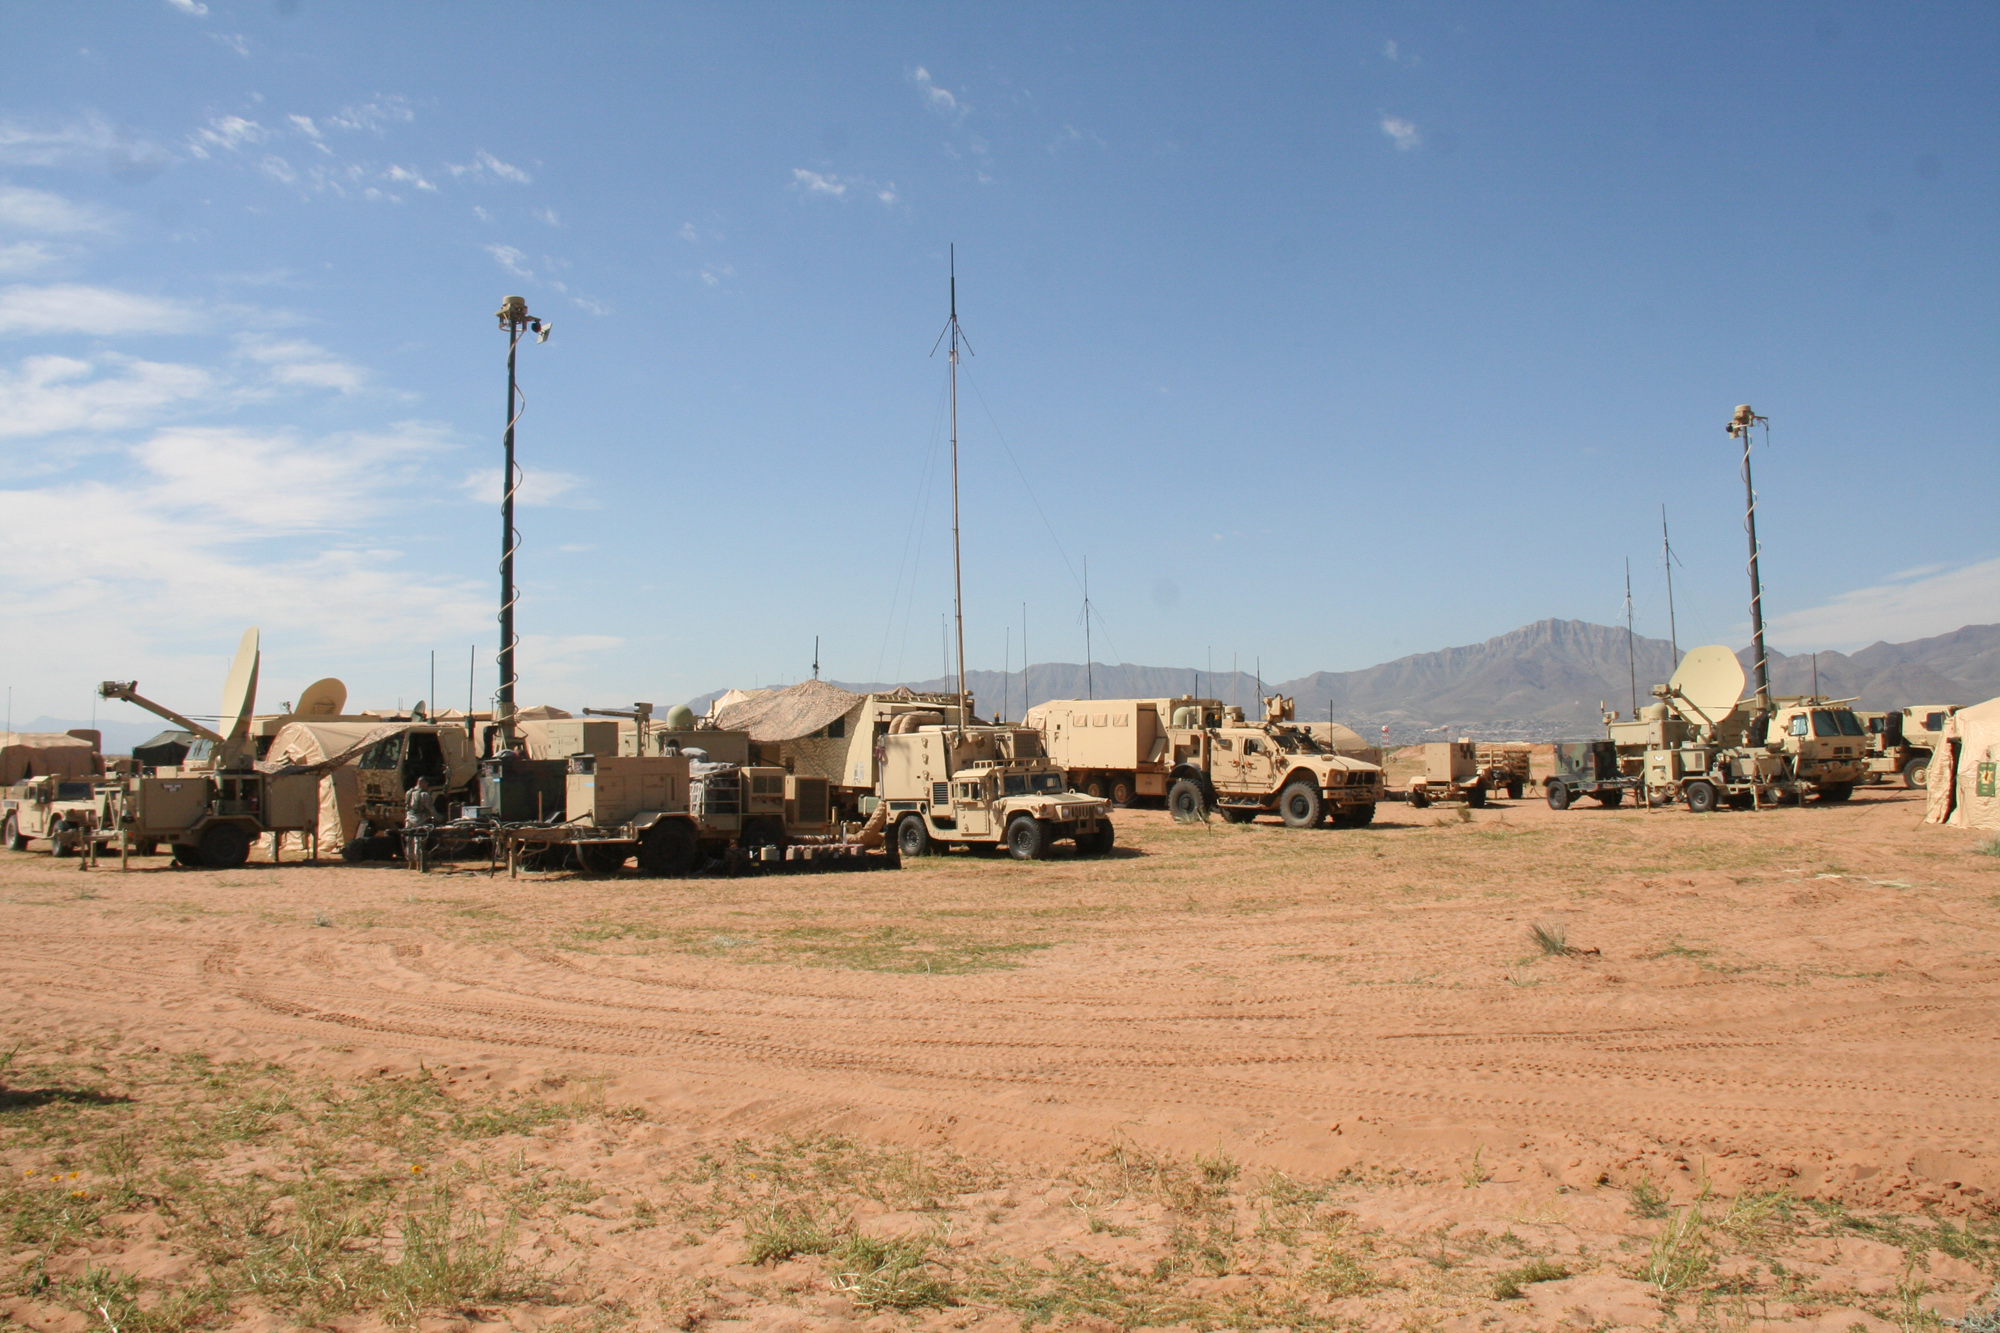 The Army's tactical network leverages WIN-T equipment to enable mission command, situational awareness and secure reliable voice, video and data communications, both on the move in tactical vehicles or inside a command post such as this brigade command at Army Warfighting Assessment 17.1 at Fort Bliss, Texas, in October 2016. (U.S. Army photo by Amy Walker, PEO C3T Public Affairs)